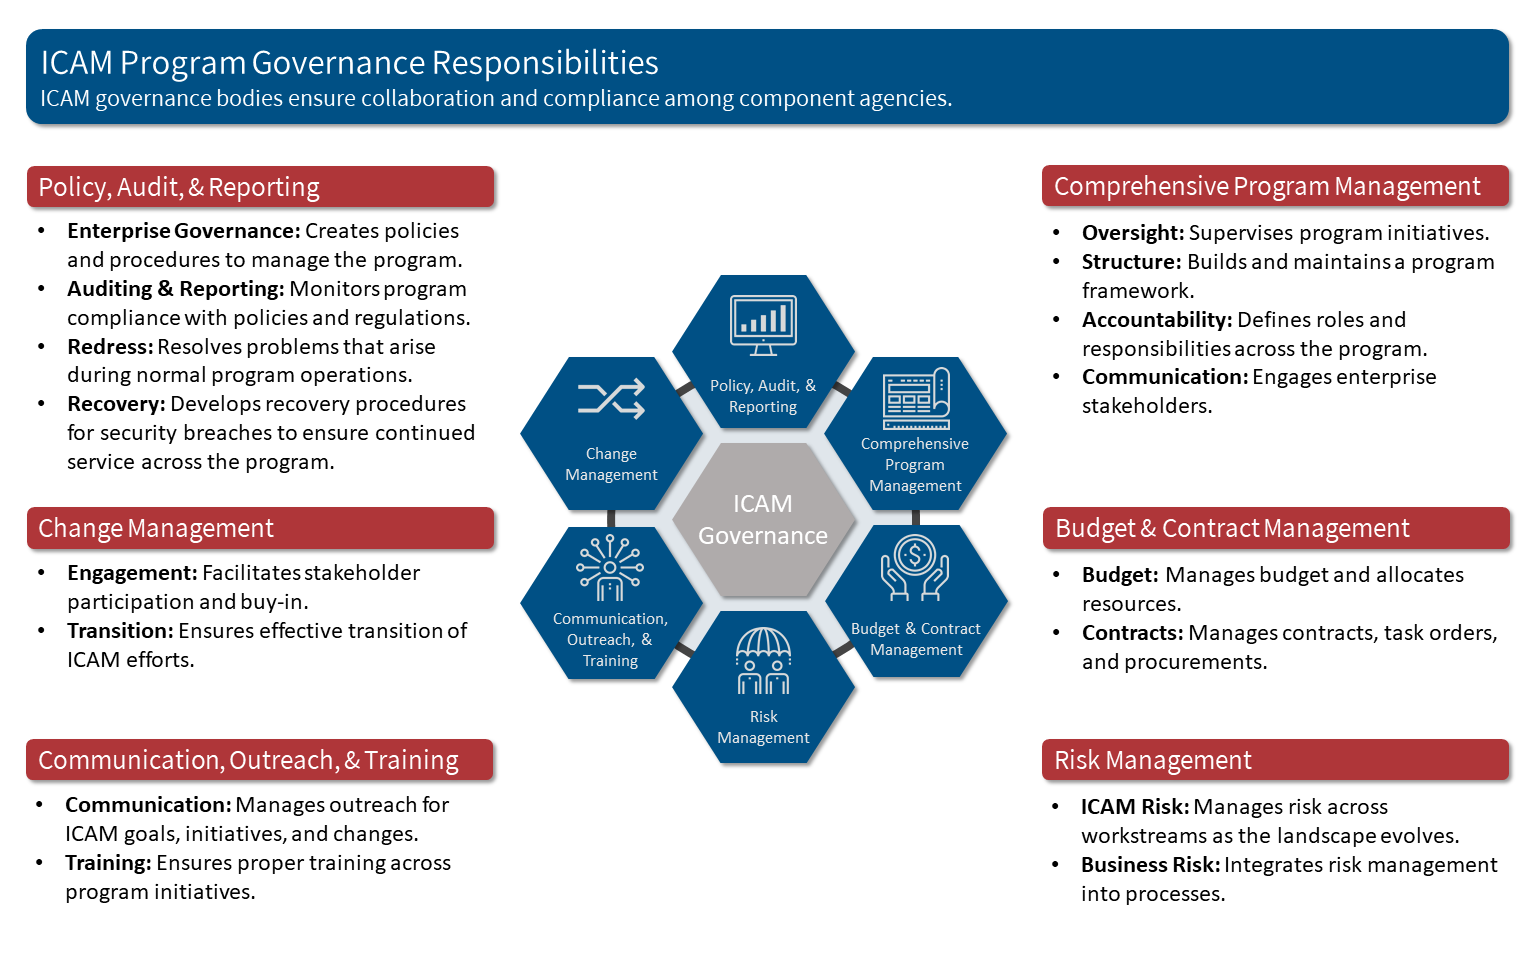 ICAM Governance Responsibilities